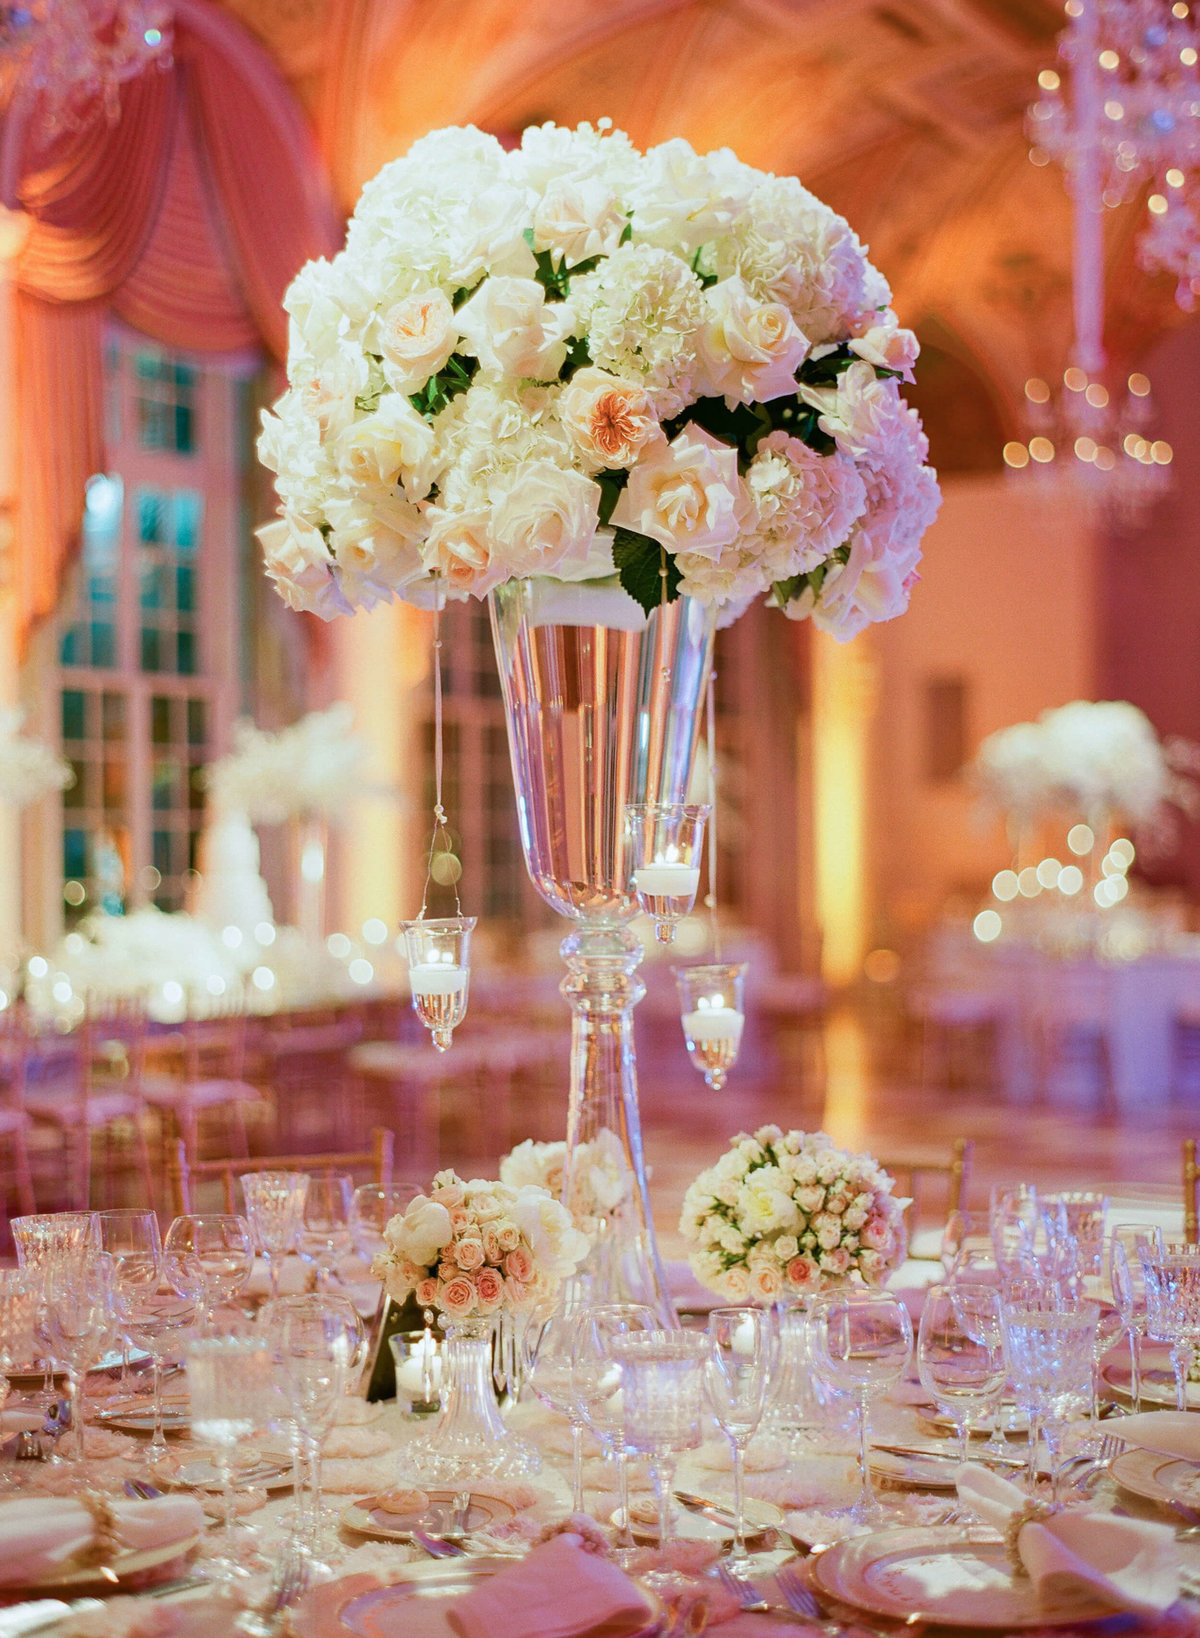 34-KTMerry-weddings-table-arrangement-Breakers-Palm-Beach